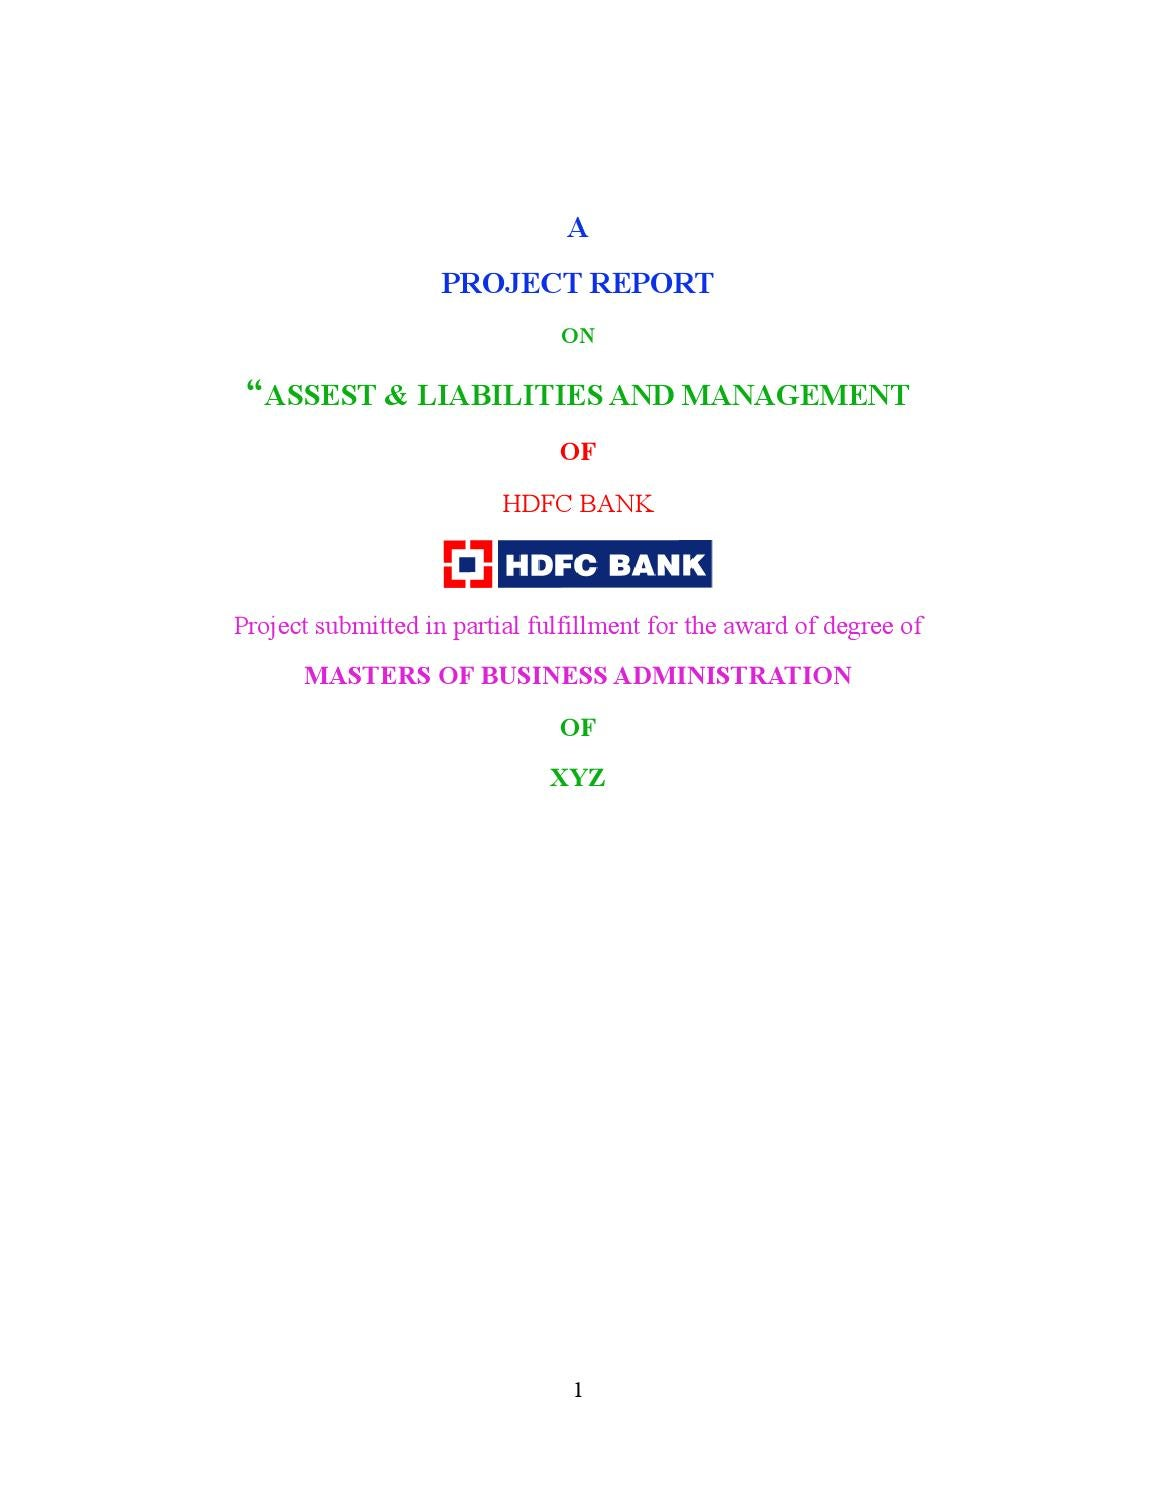 hdfc bank essay A merger occurs when two or more companies combines and the resulting firm maintains the identity of one of the firms one or more companies may merge with an existing company or they may merge to form a new company.